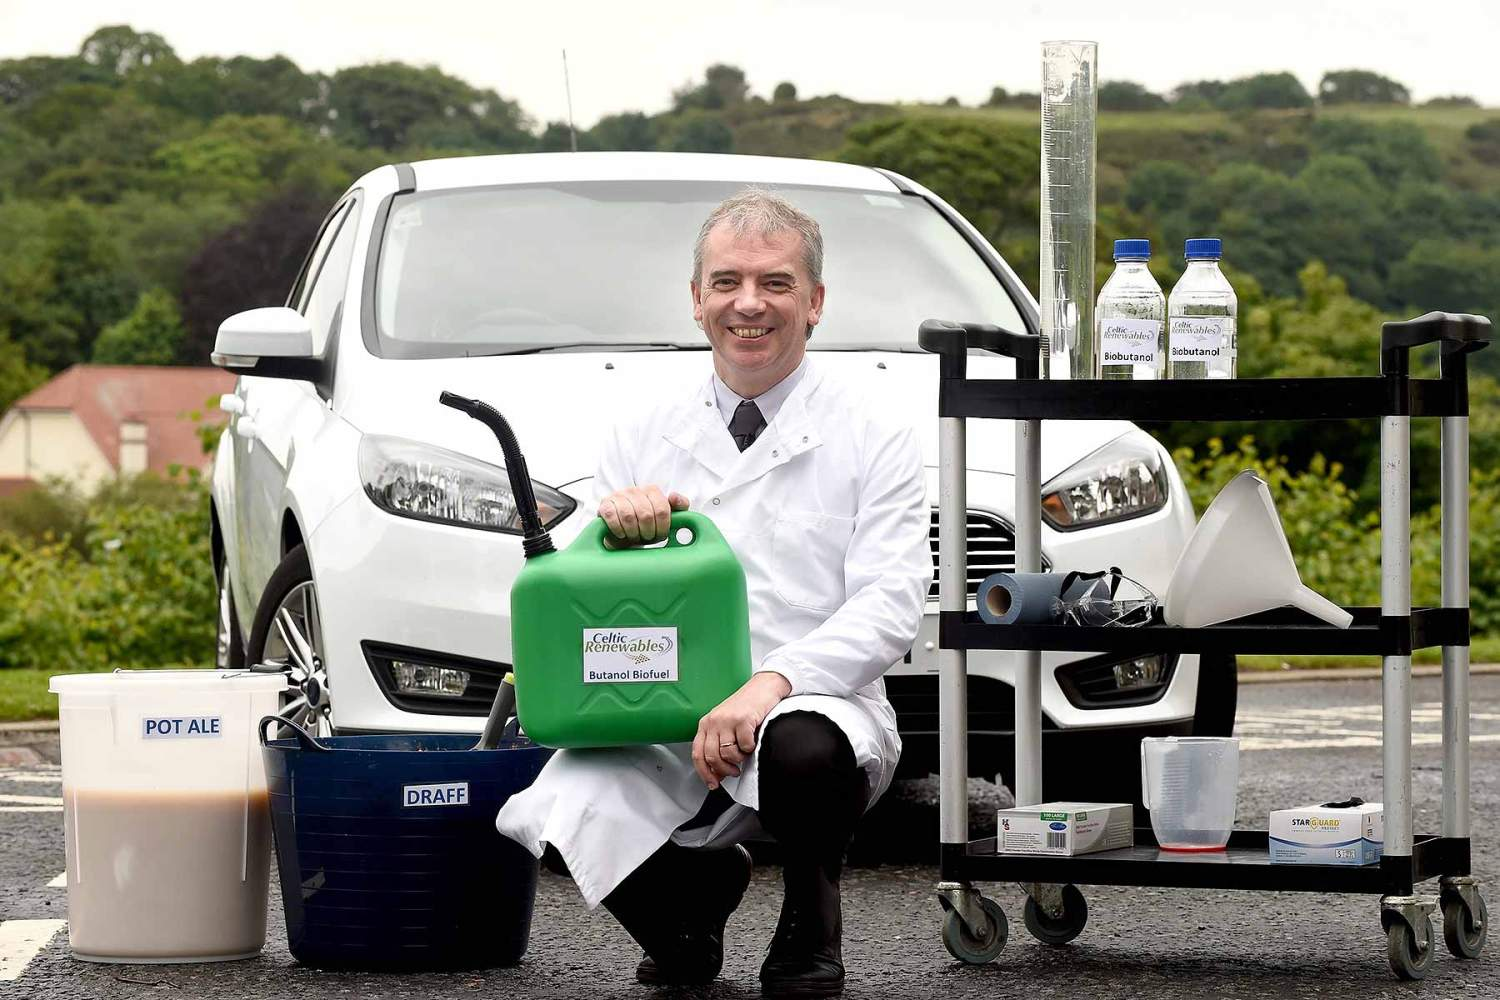 Whisky residue biofuel car